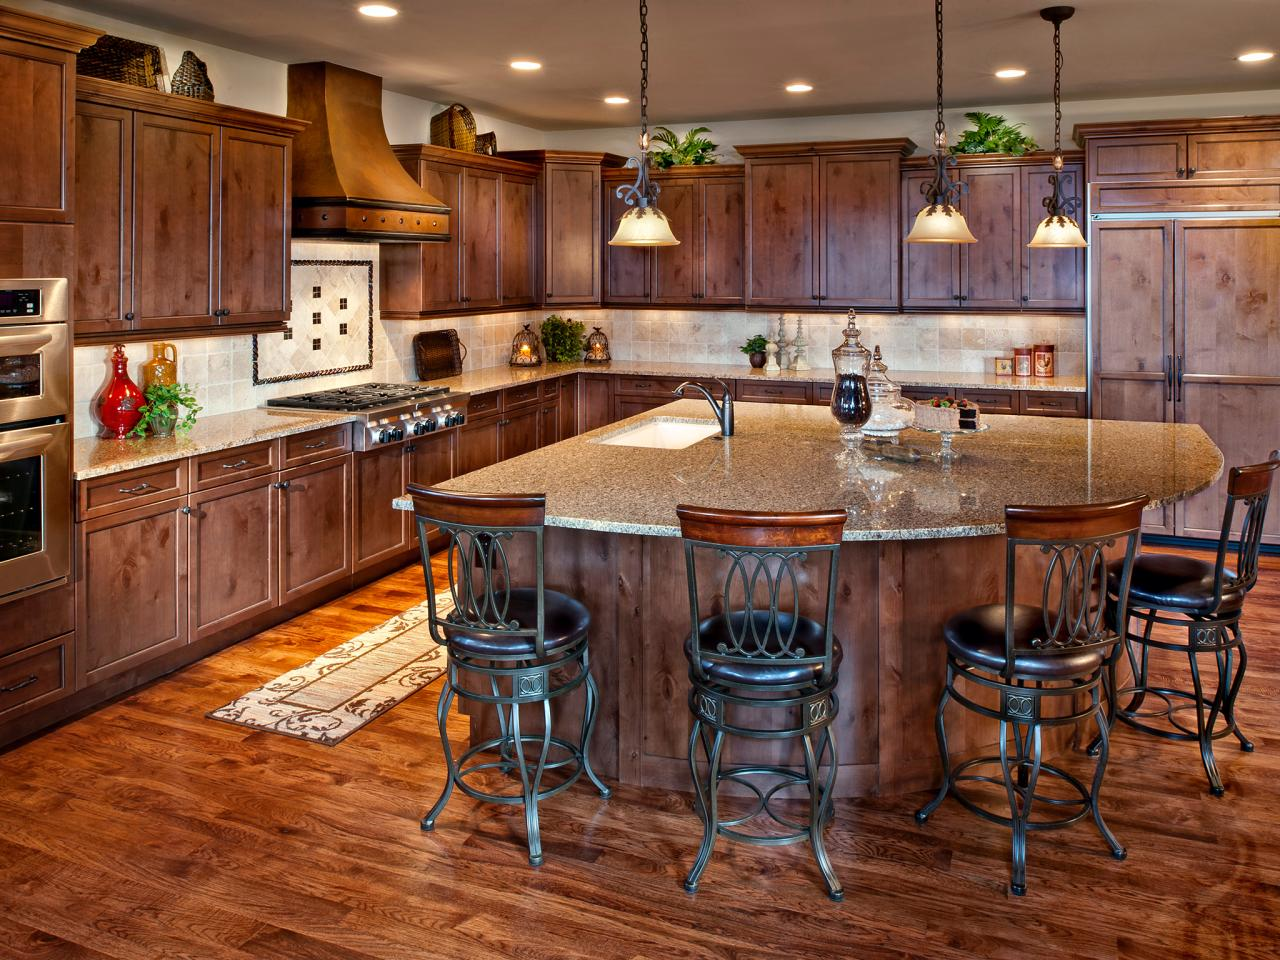 Old world kitchen designs photo gallery - Luxury Kitchen Design